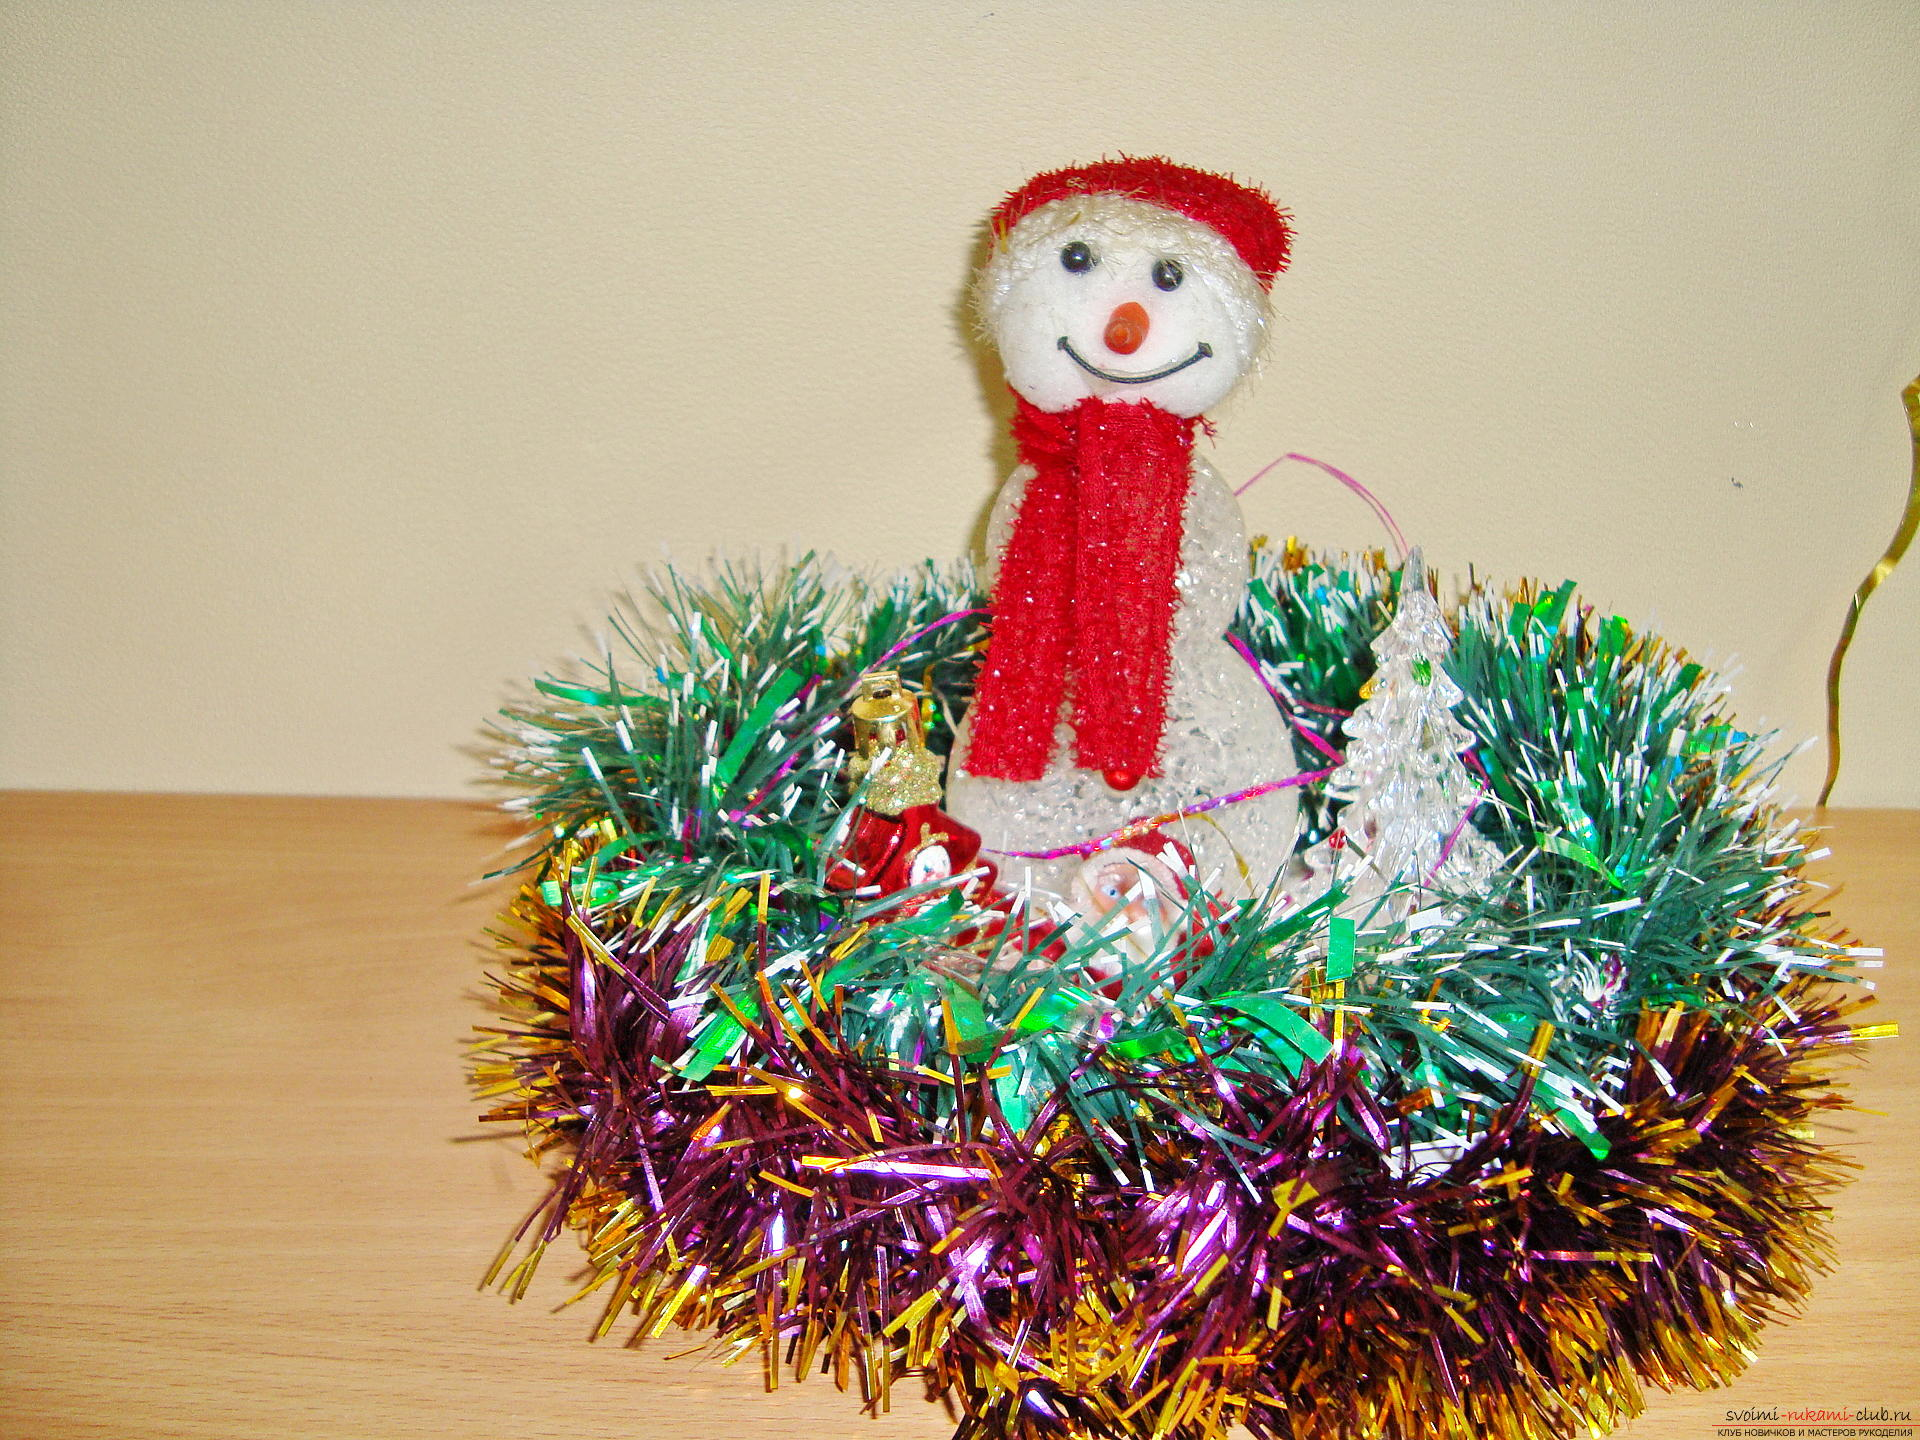 A master class with a photo and description will teach you how to make your own New Year's hand-made snowman. Photo # 2